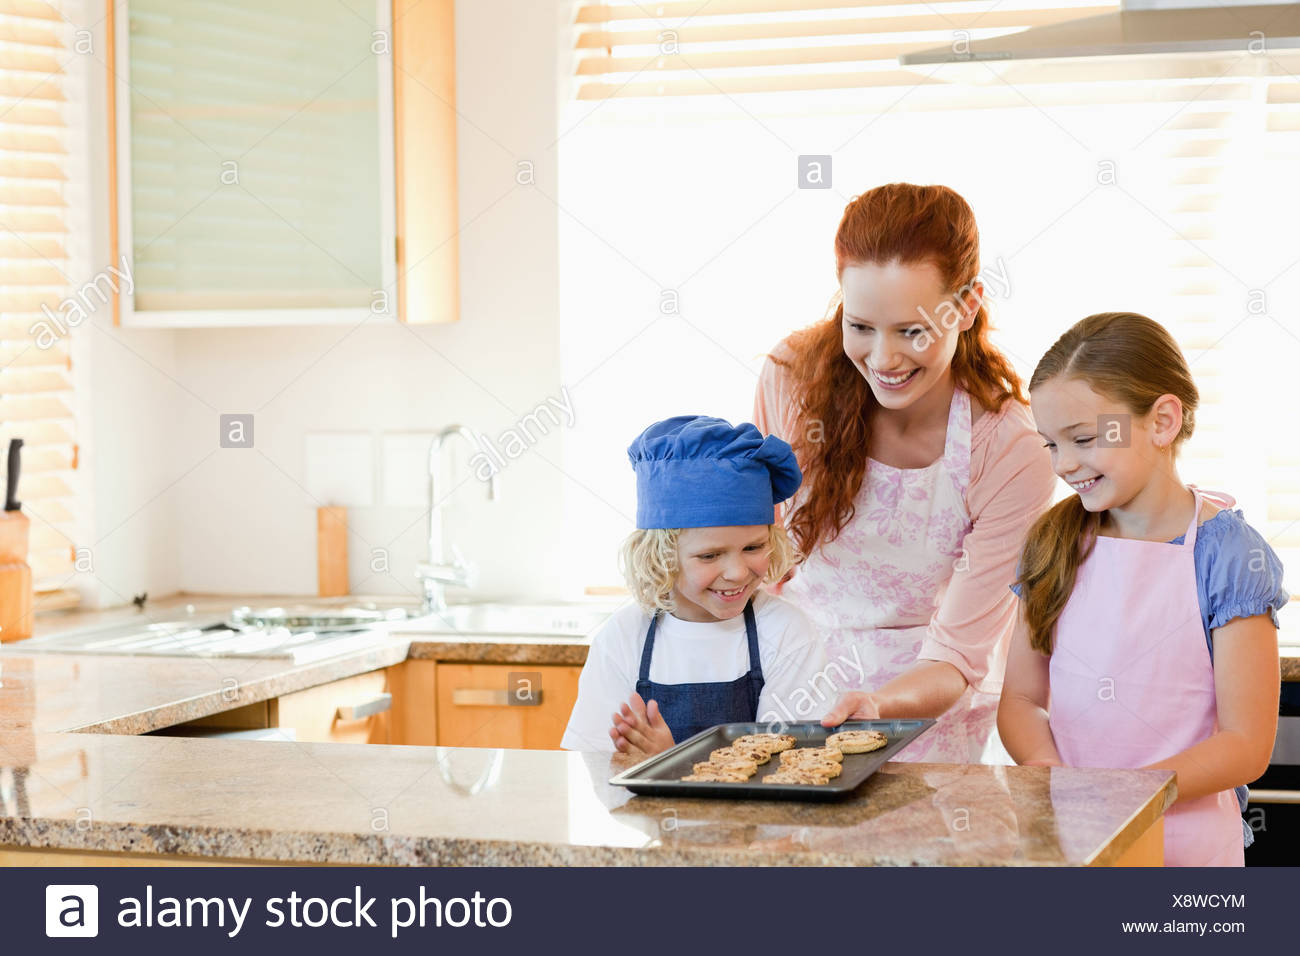 Mother presenting finished cookies to her children - Stock Image